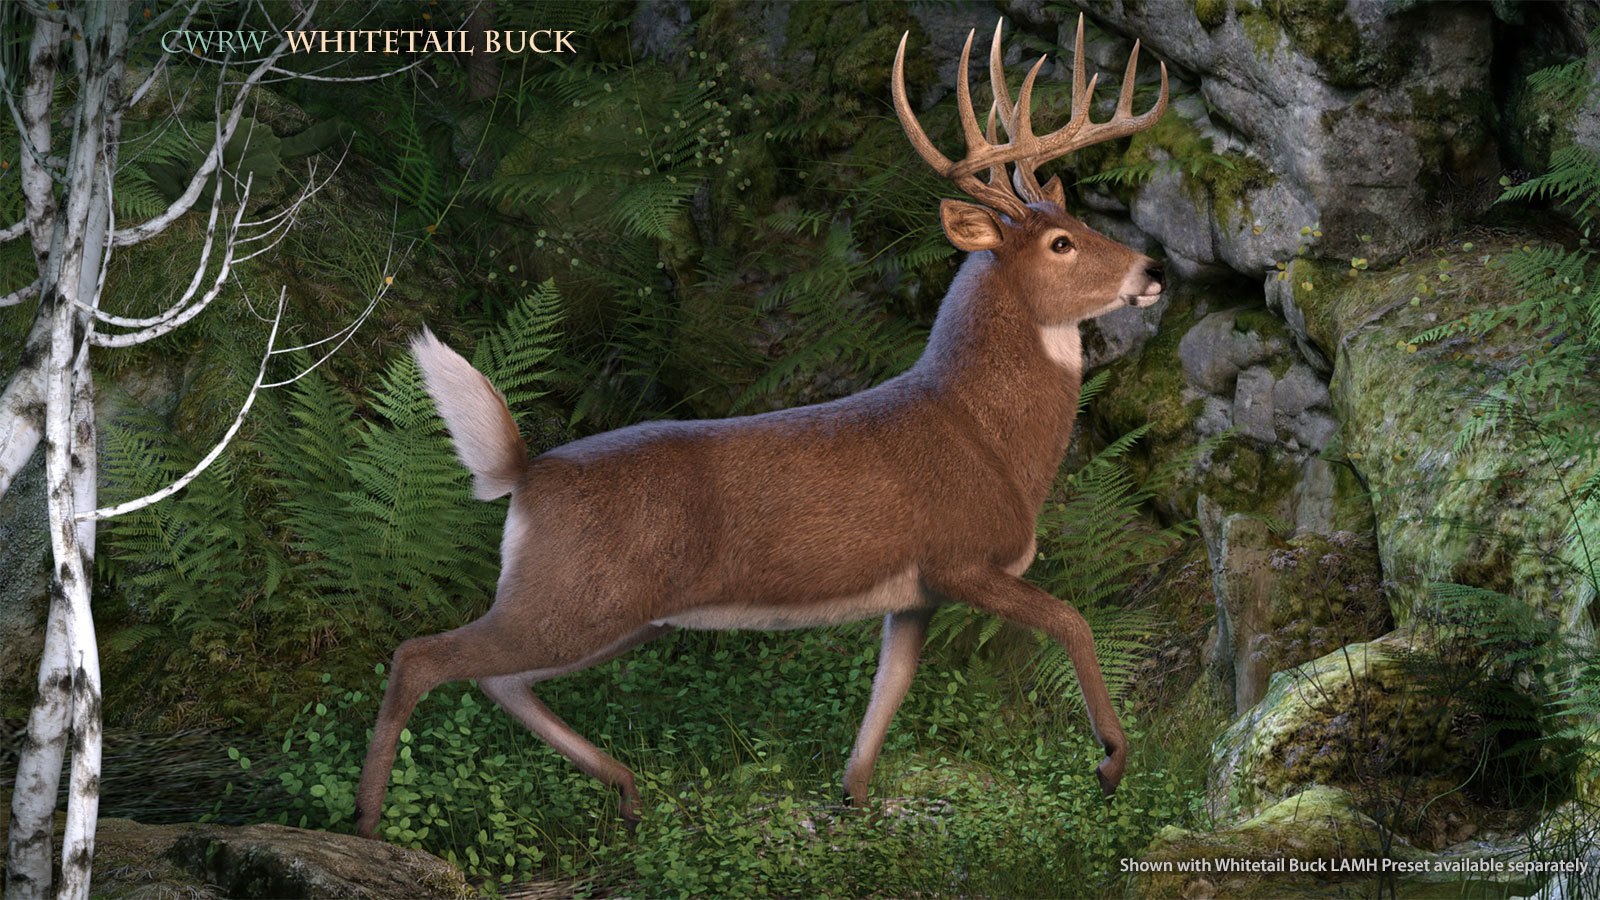 CWRW Whitetail Buck by cwrw